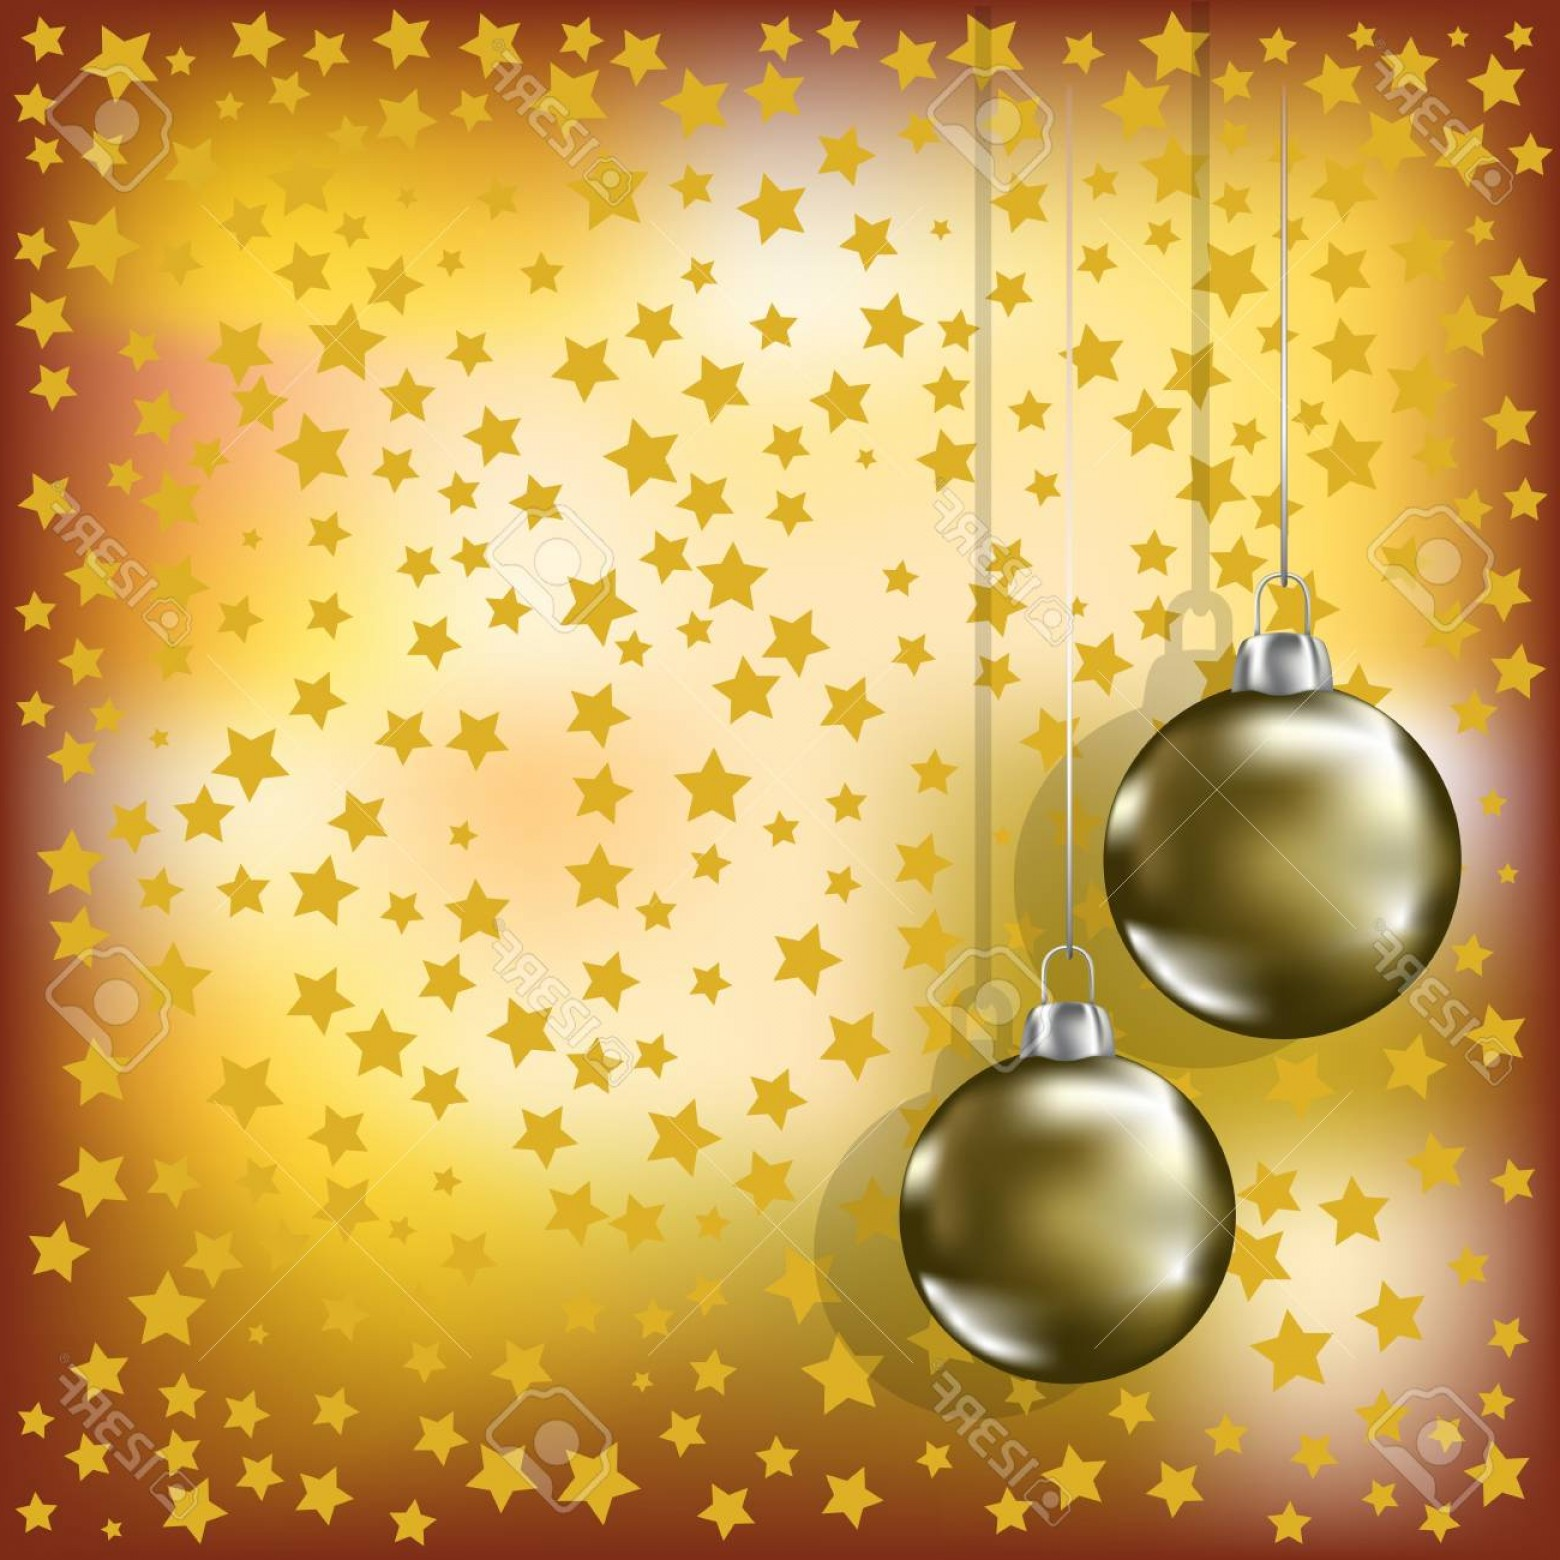 Stars Yellow Christmas Vector: Photochristmas Golden Balls And Stars Yellow Background